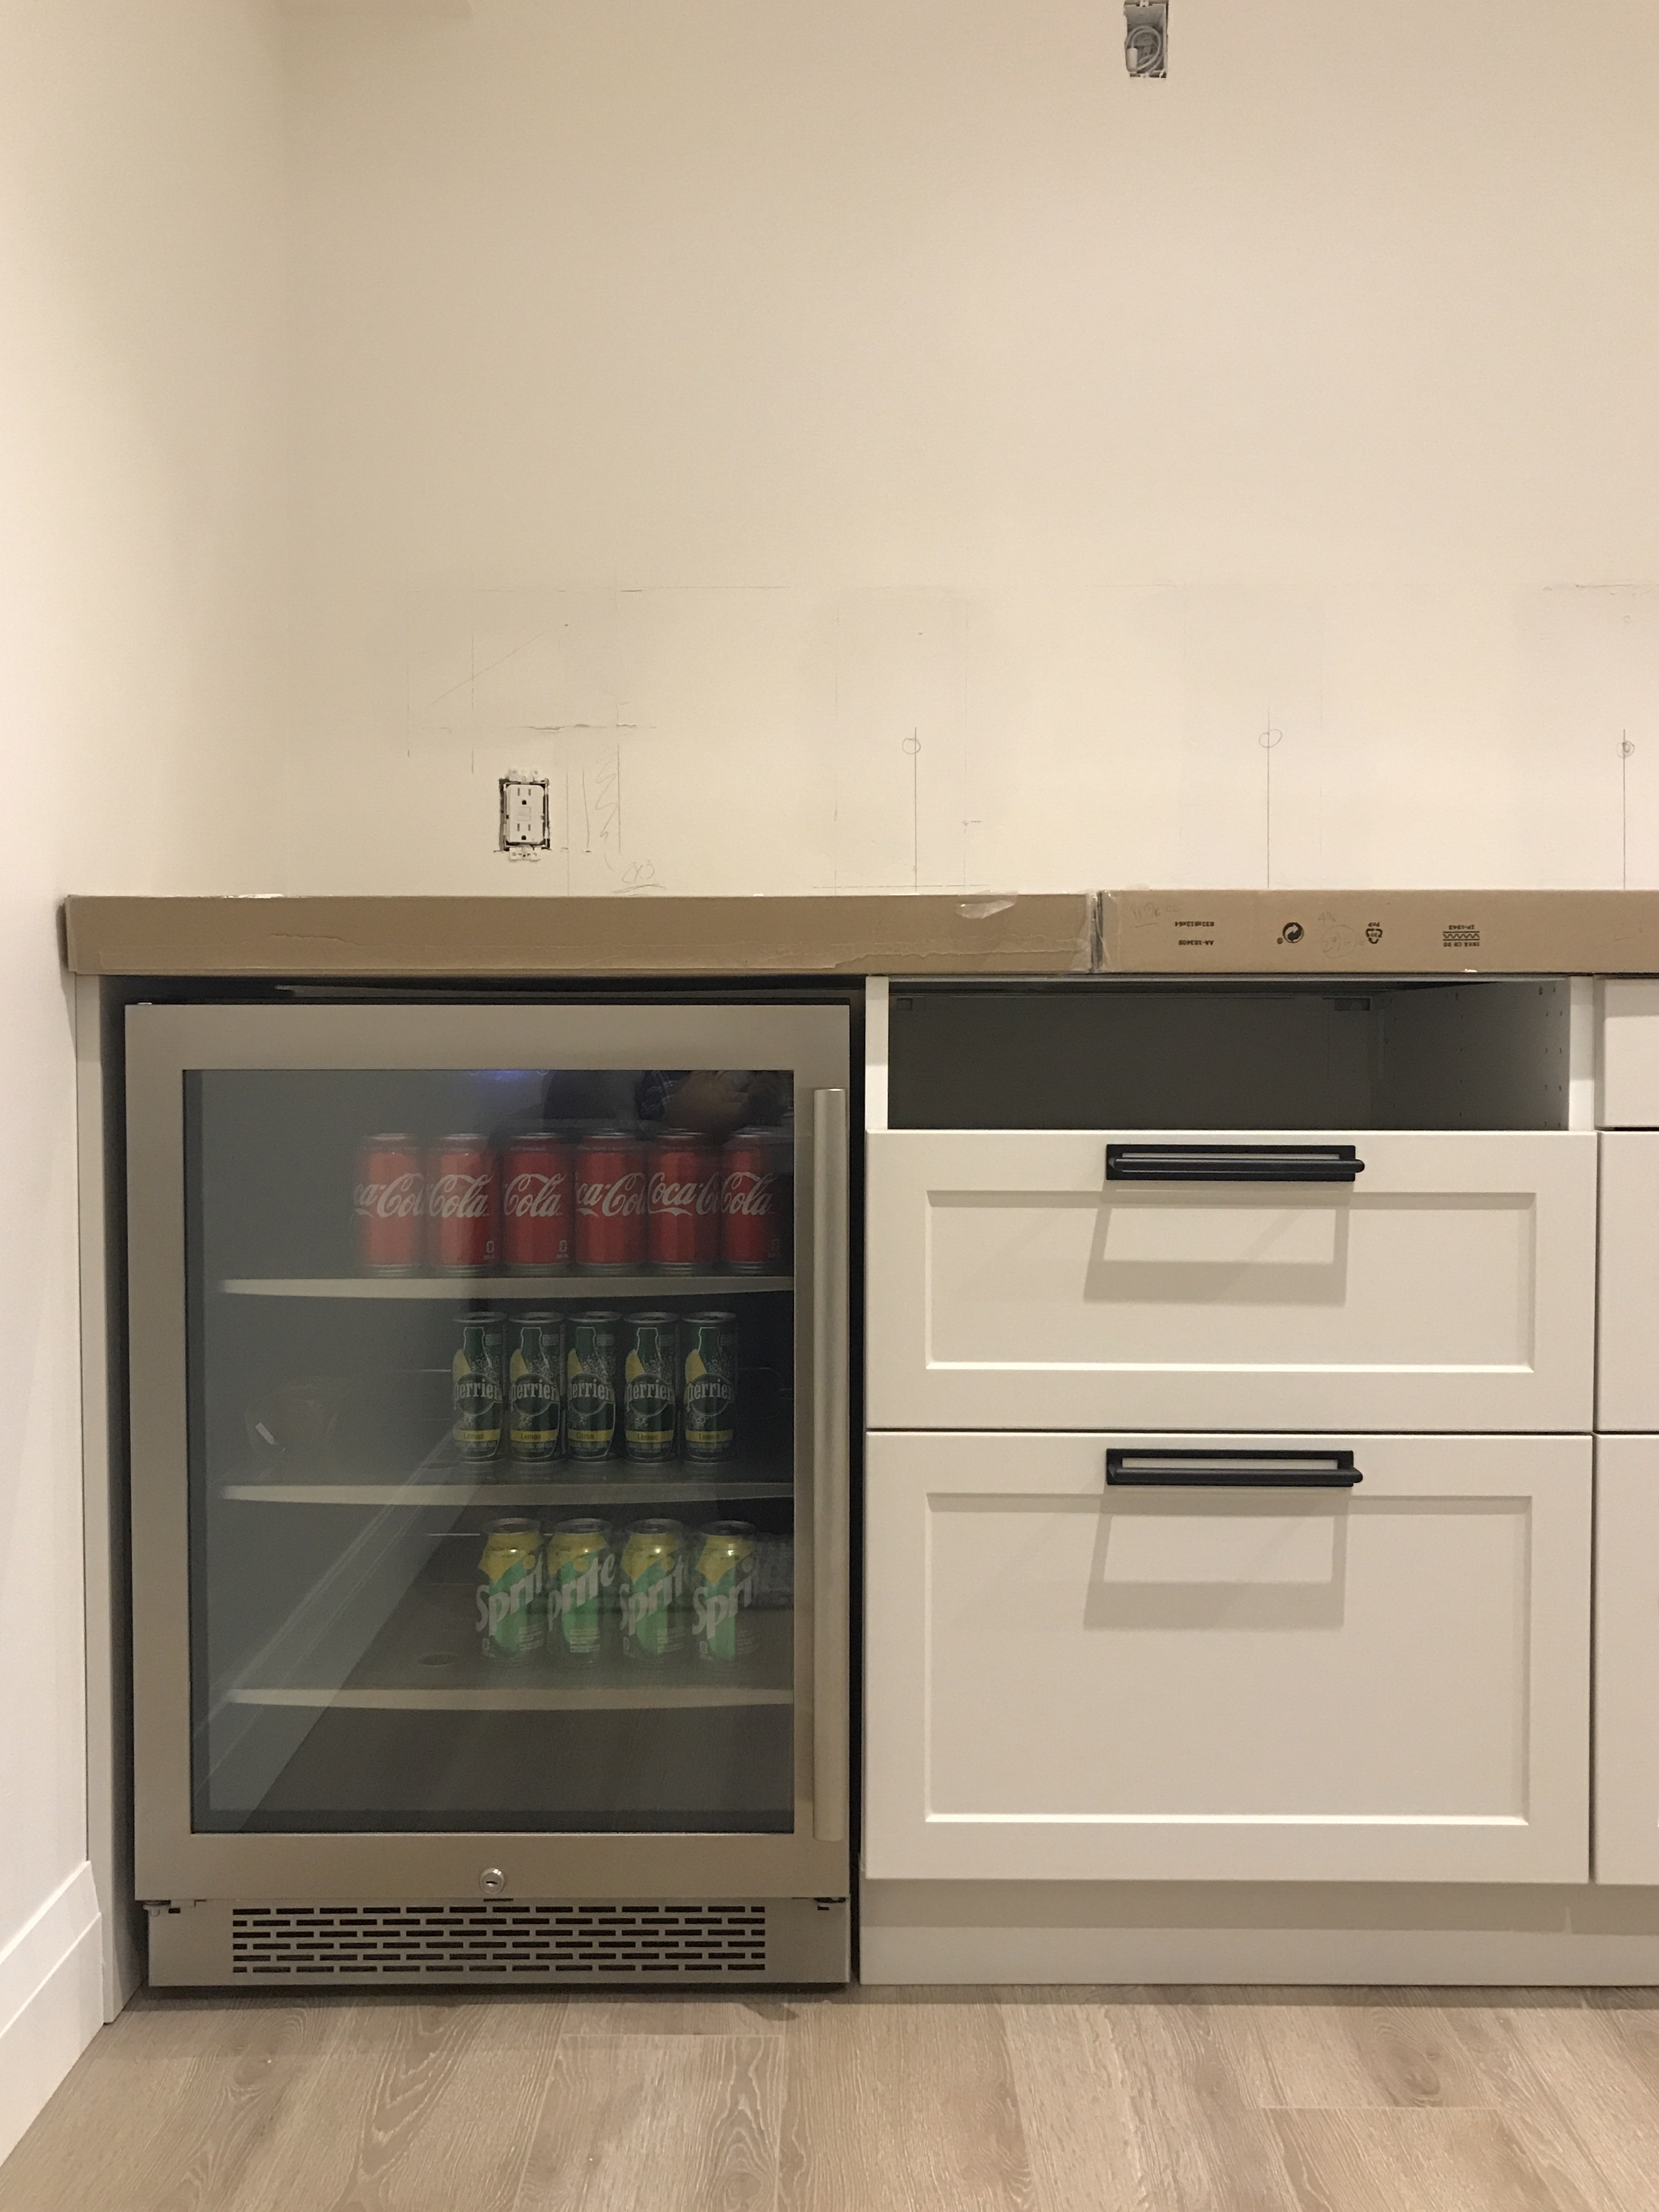 build.com beverage fridge, avallon beverage centre, drinks fridge, basement kitchen fridge